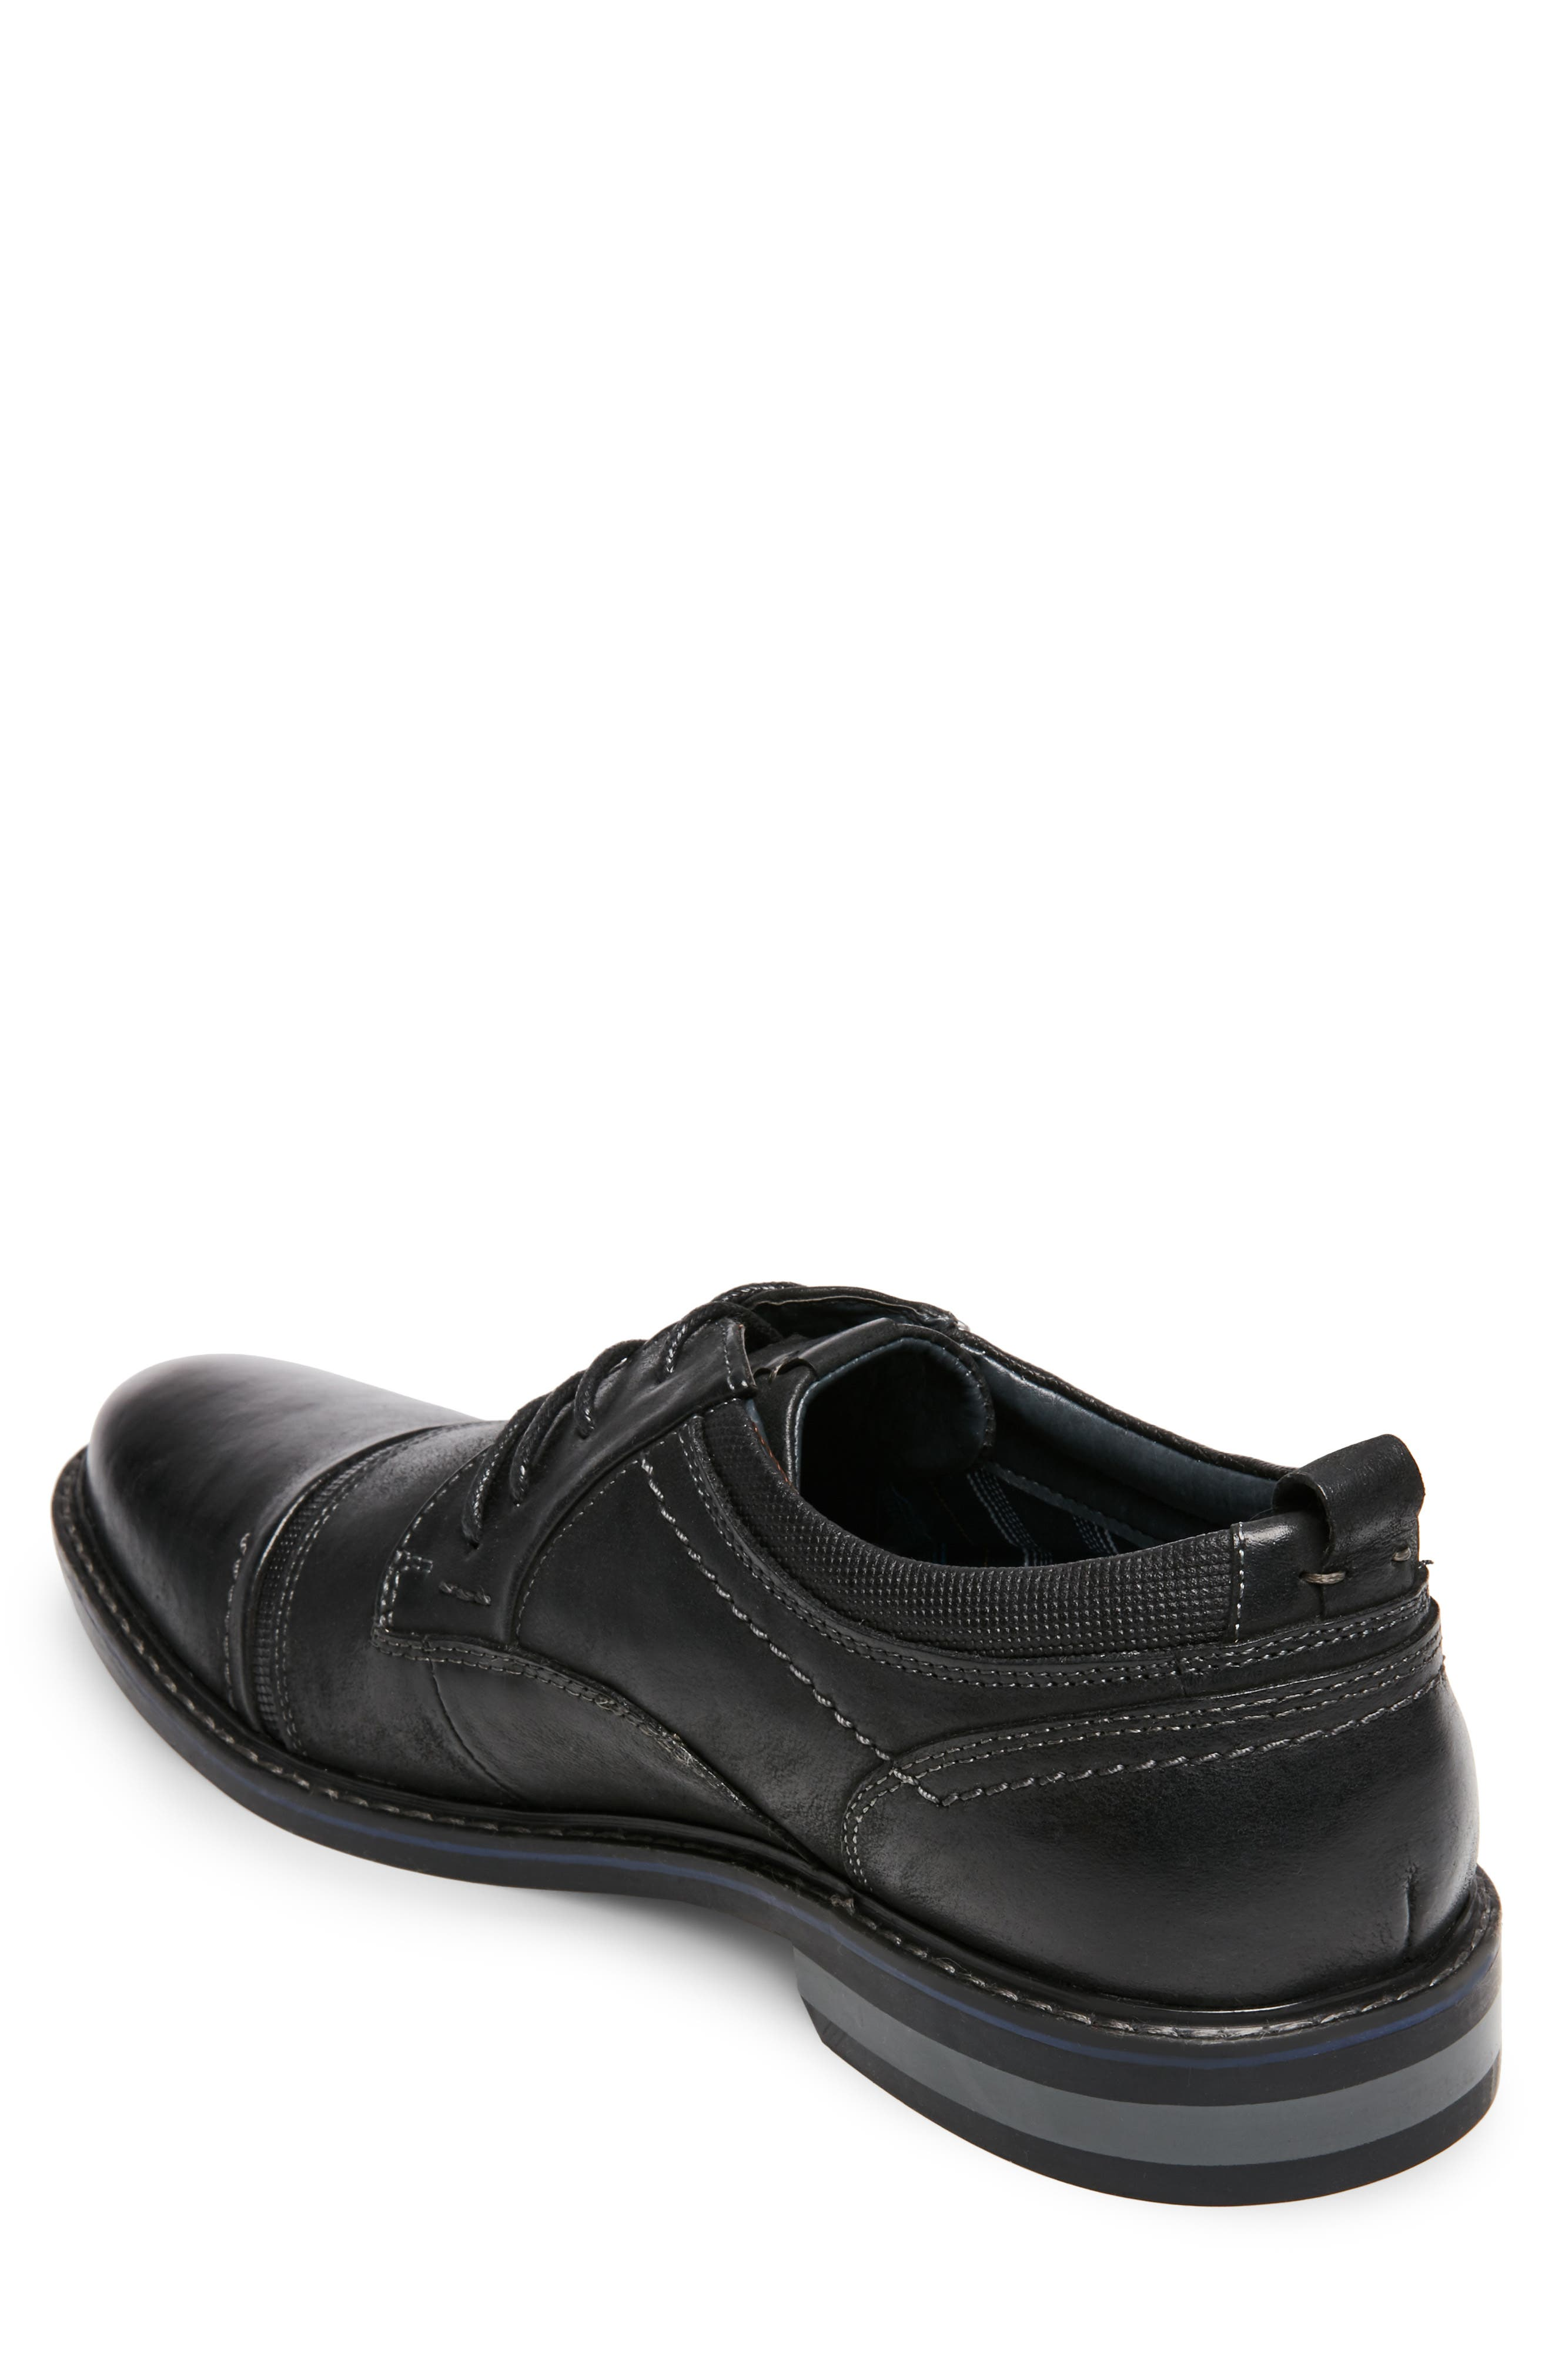 O'Leary Cap Toe Derby,                             Alternate thumbnail 2, color,                             BLACK LEATHER